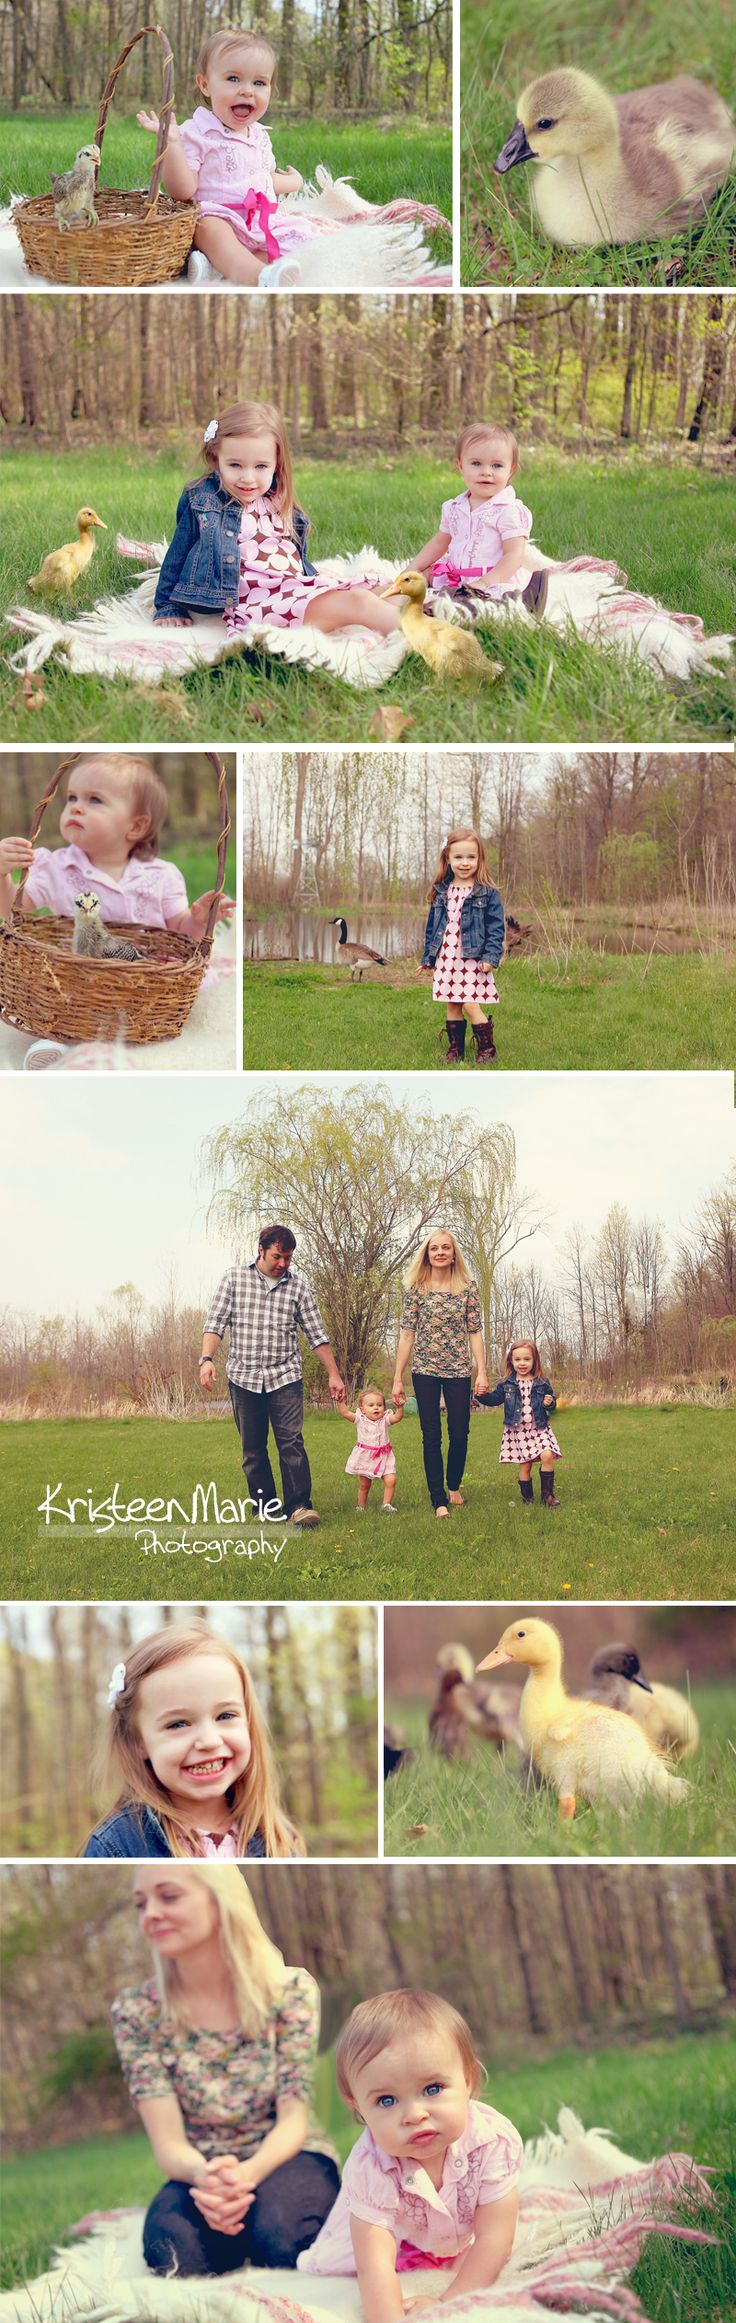 Family Easter Pictures - chicks and ducks and all!